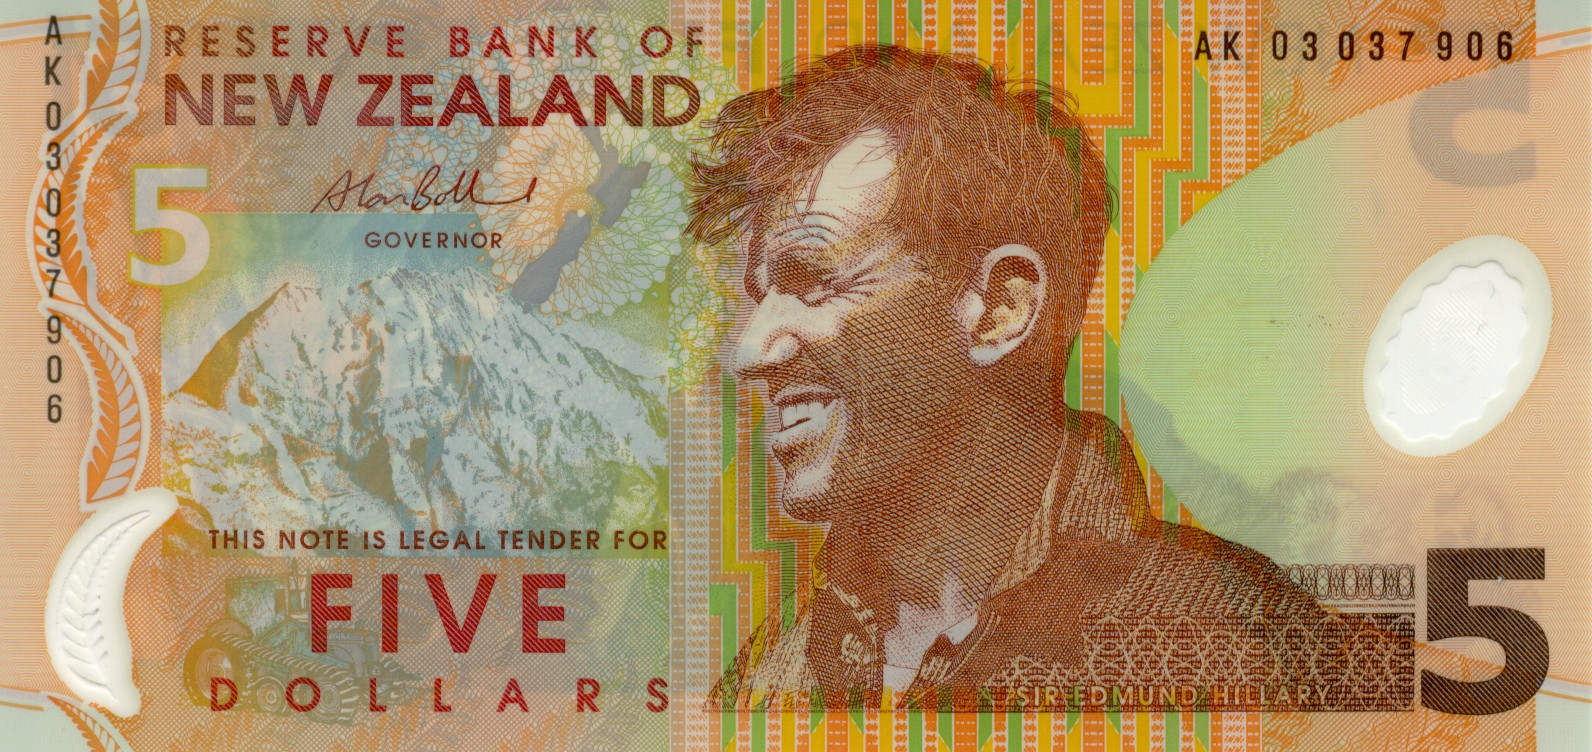 New-Zealand-Dollar-NZD-5-bank-note-2003-issue-Alan-Bollard-signature-Hillary-Everest-Massey-Fergusson-tractor-front-KAR